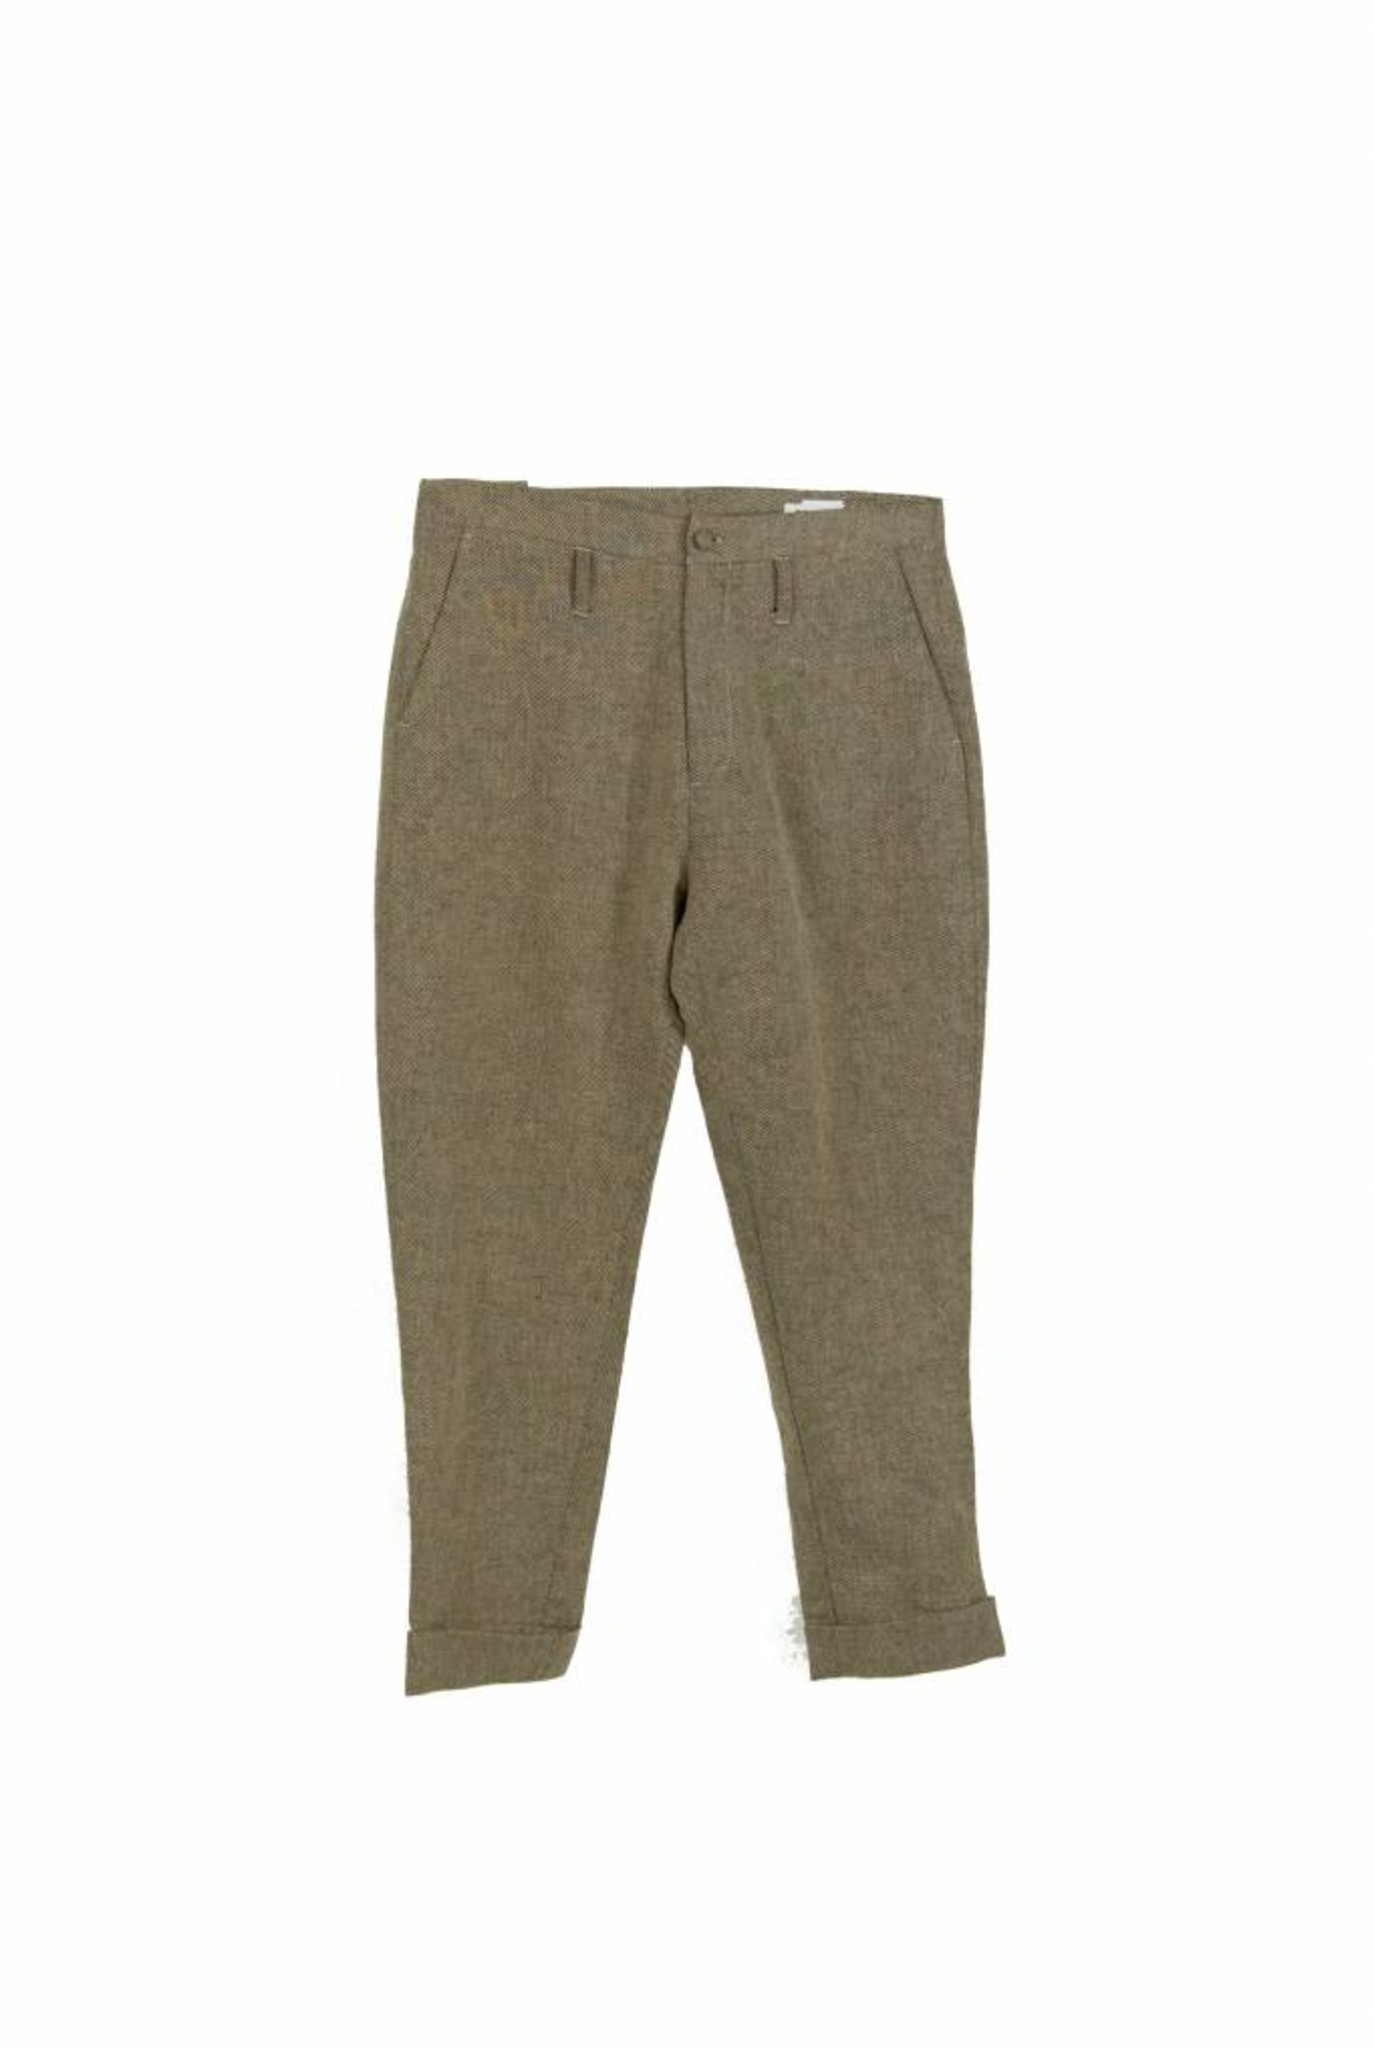 Law trouser beige melange